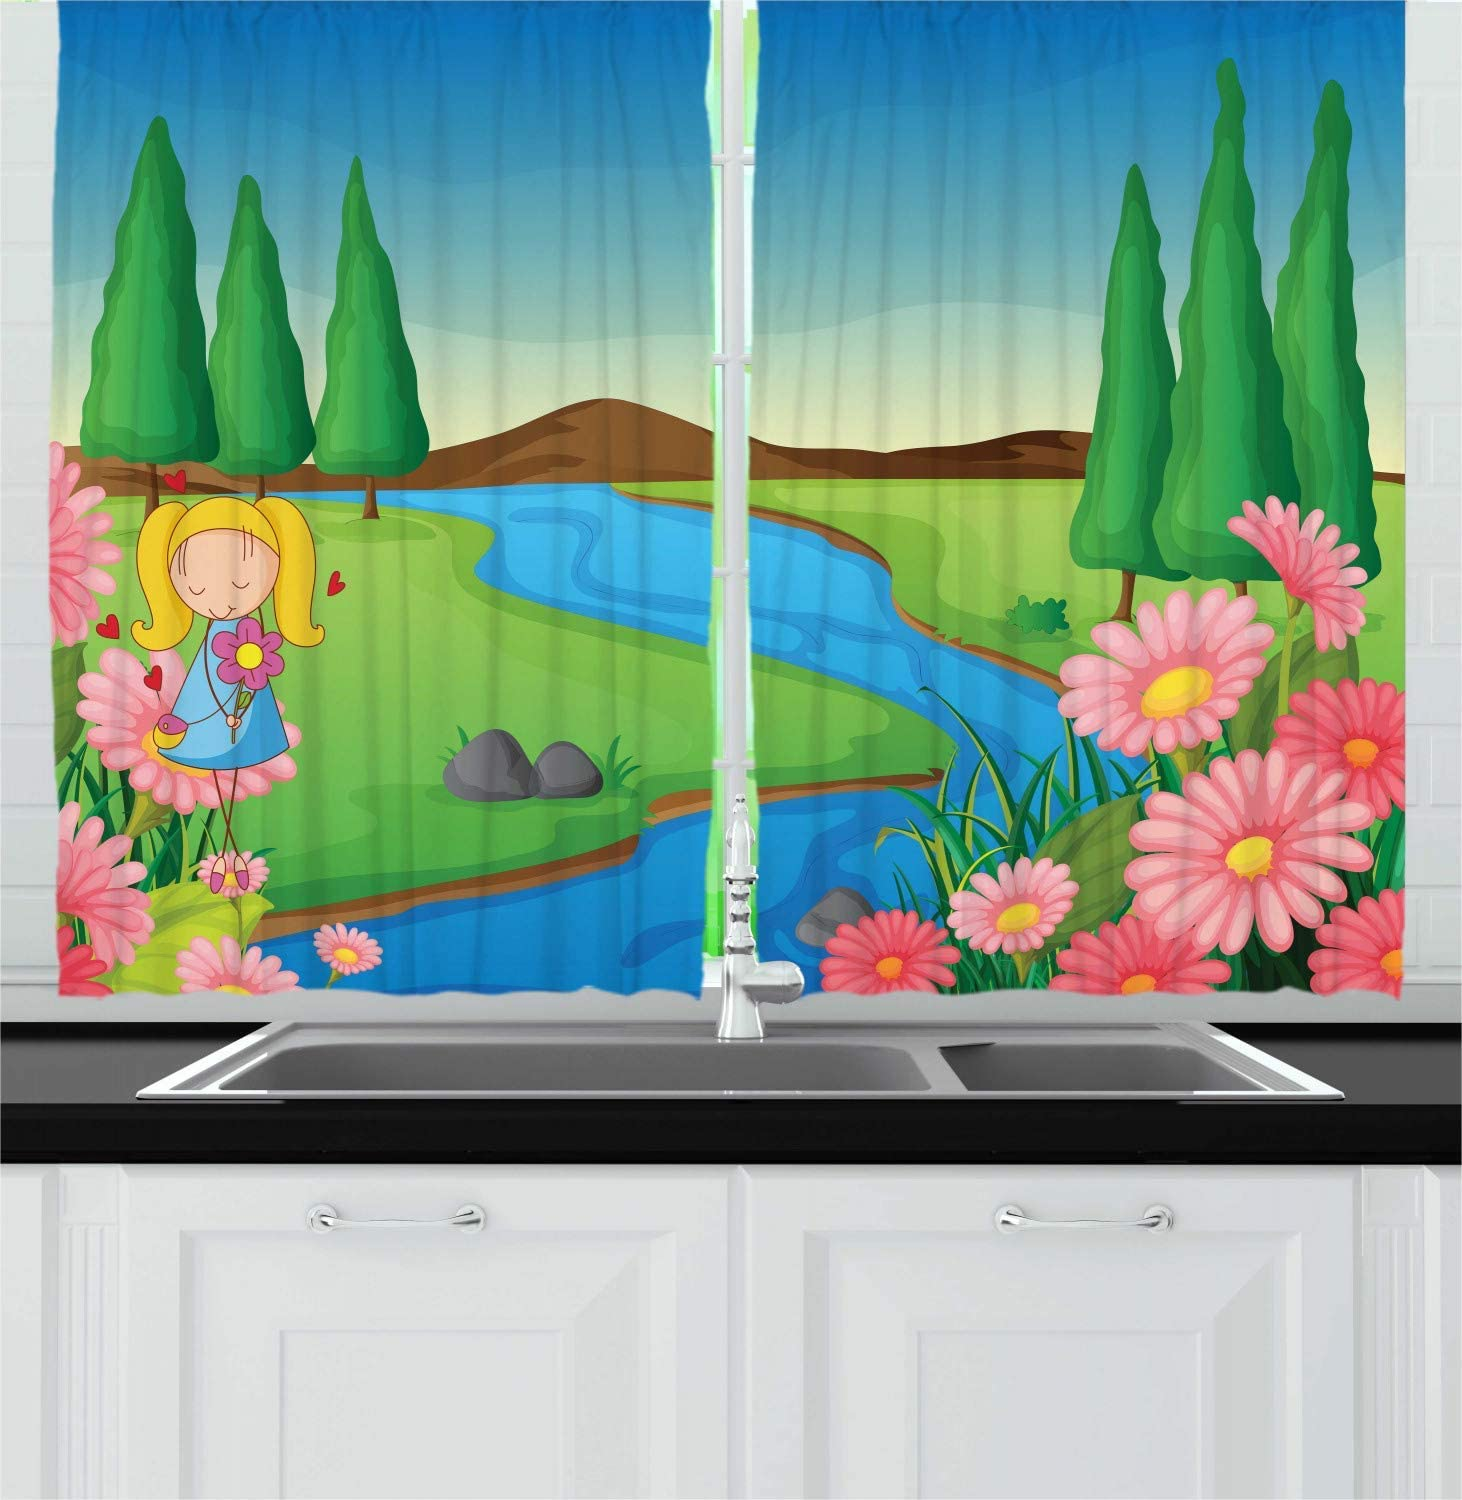 Window Drapes 2 Panel Set for Kitchen Cafe Decor FAFANIQ Nursery Kitchen Curtains Multicolor,57 * 47 inch Cartoon Style Illustration of a Little Girl in Calming Nature Green Fields River